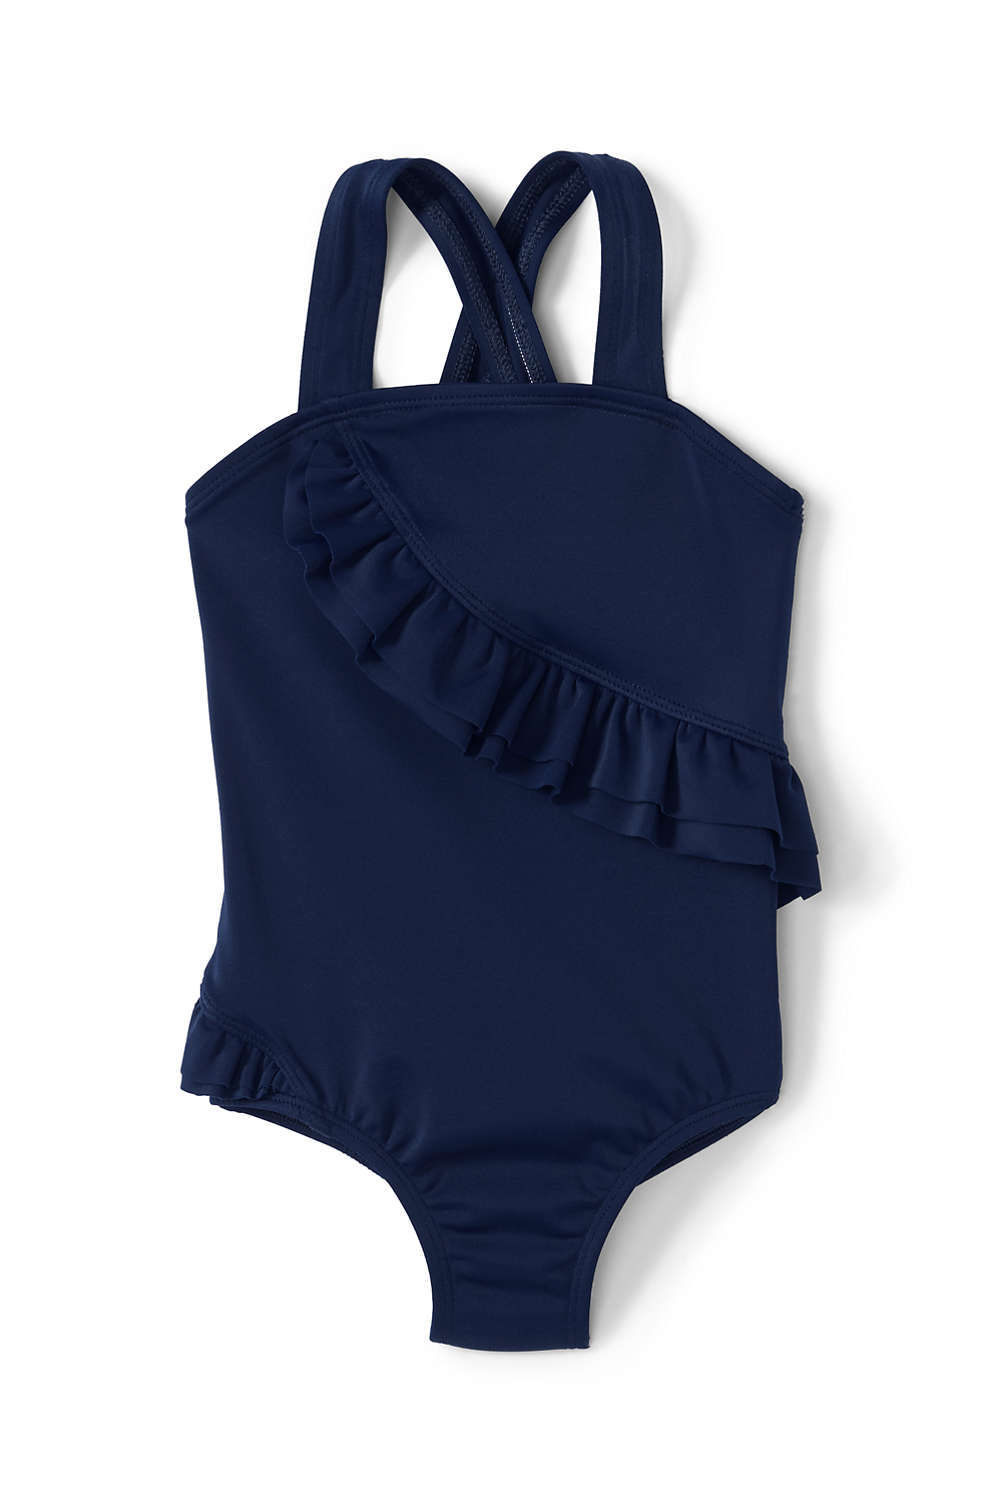 f1b5ed406402d Toddler Girls One Piece Ruffle Swimsuit from Lands' End